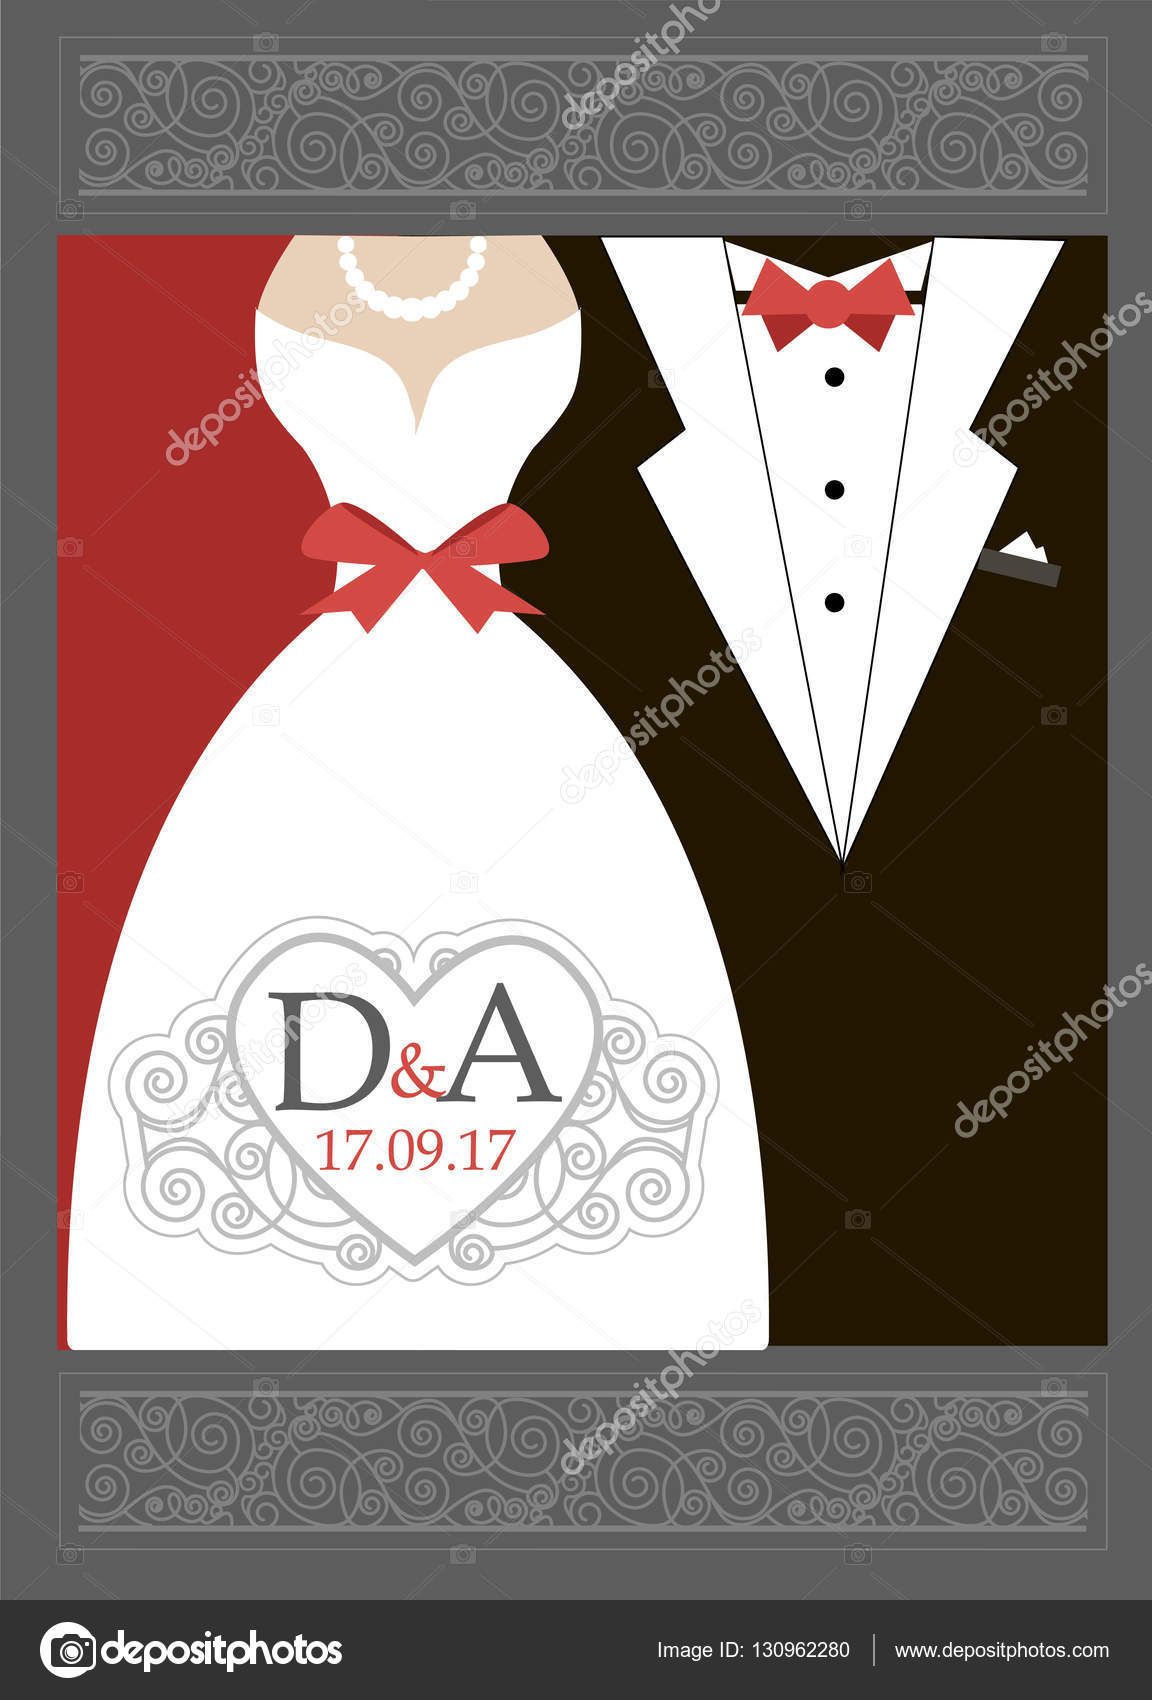 Bride And Groom Wedding Invitation Red Black White Stock Vector